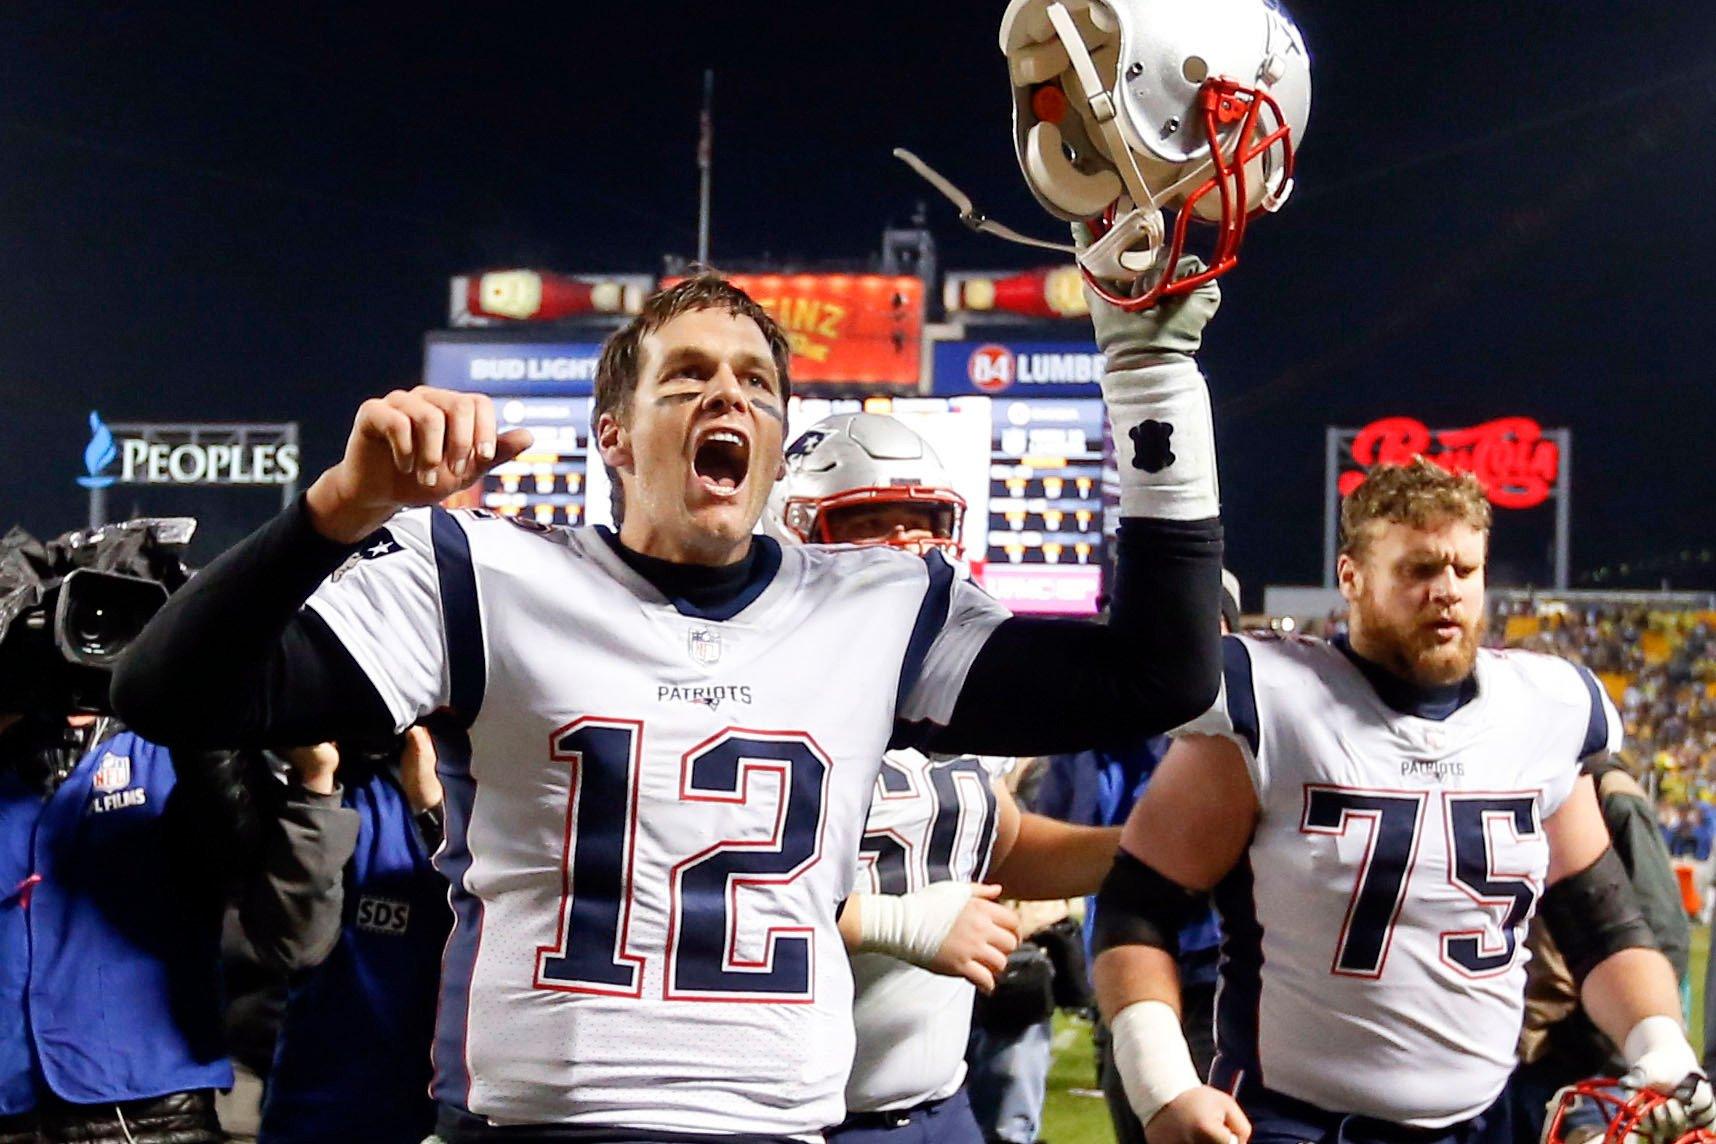 Patriots get superstitious with odd Super Bowl jersey decision